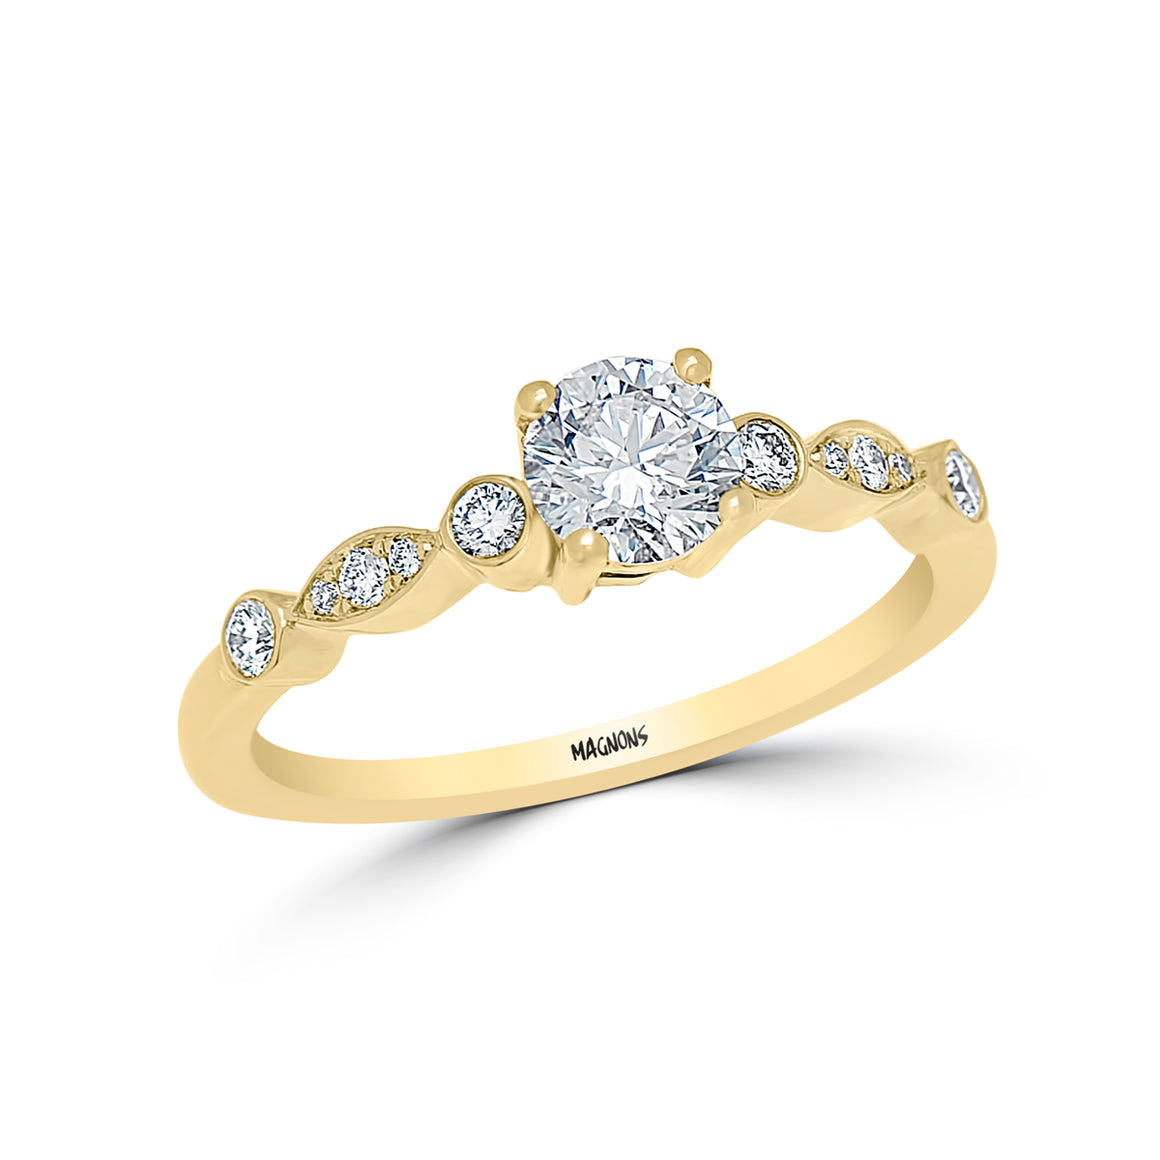 0.50CT Canadian Diamond Engagement Ring Yellow gold 18K Diamond Engagement Bridal Ring